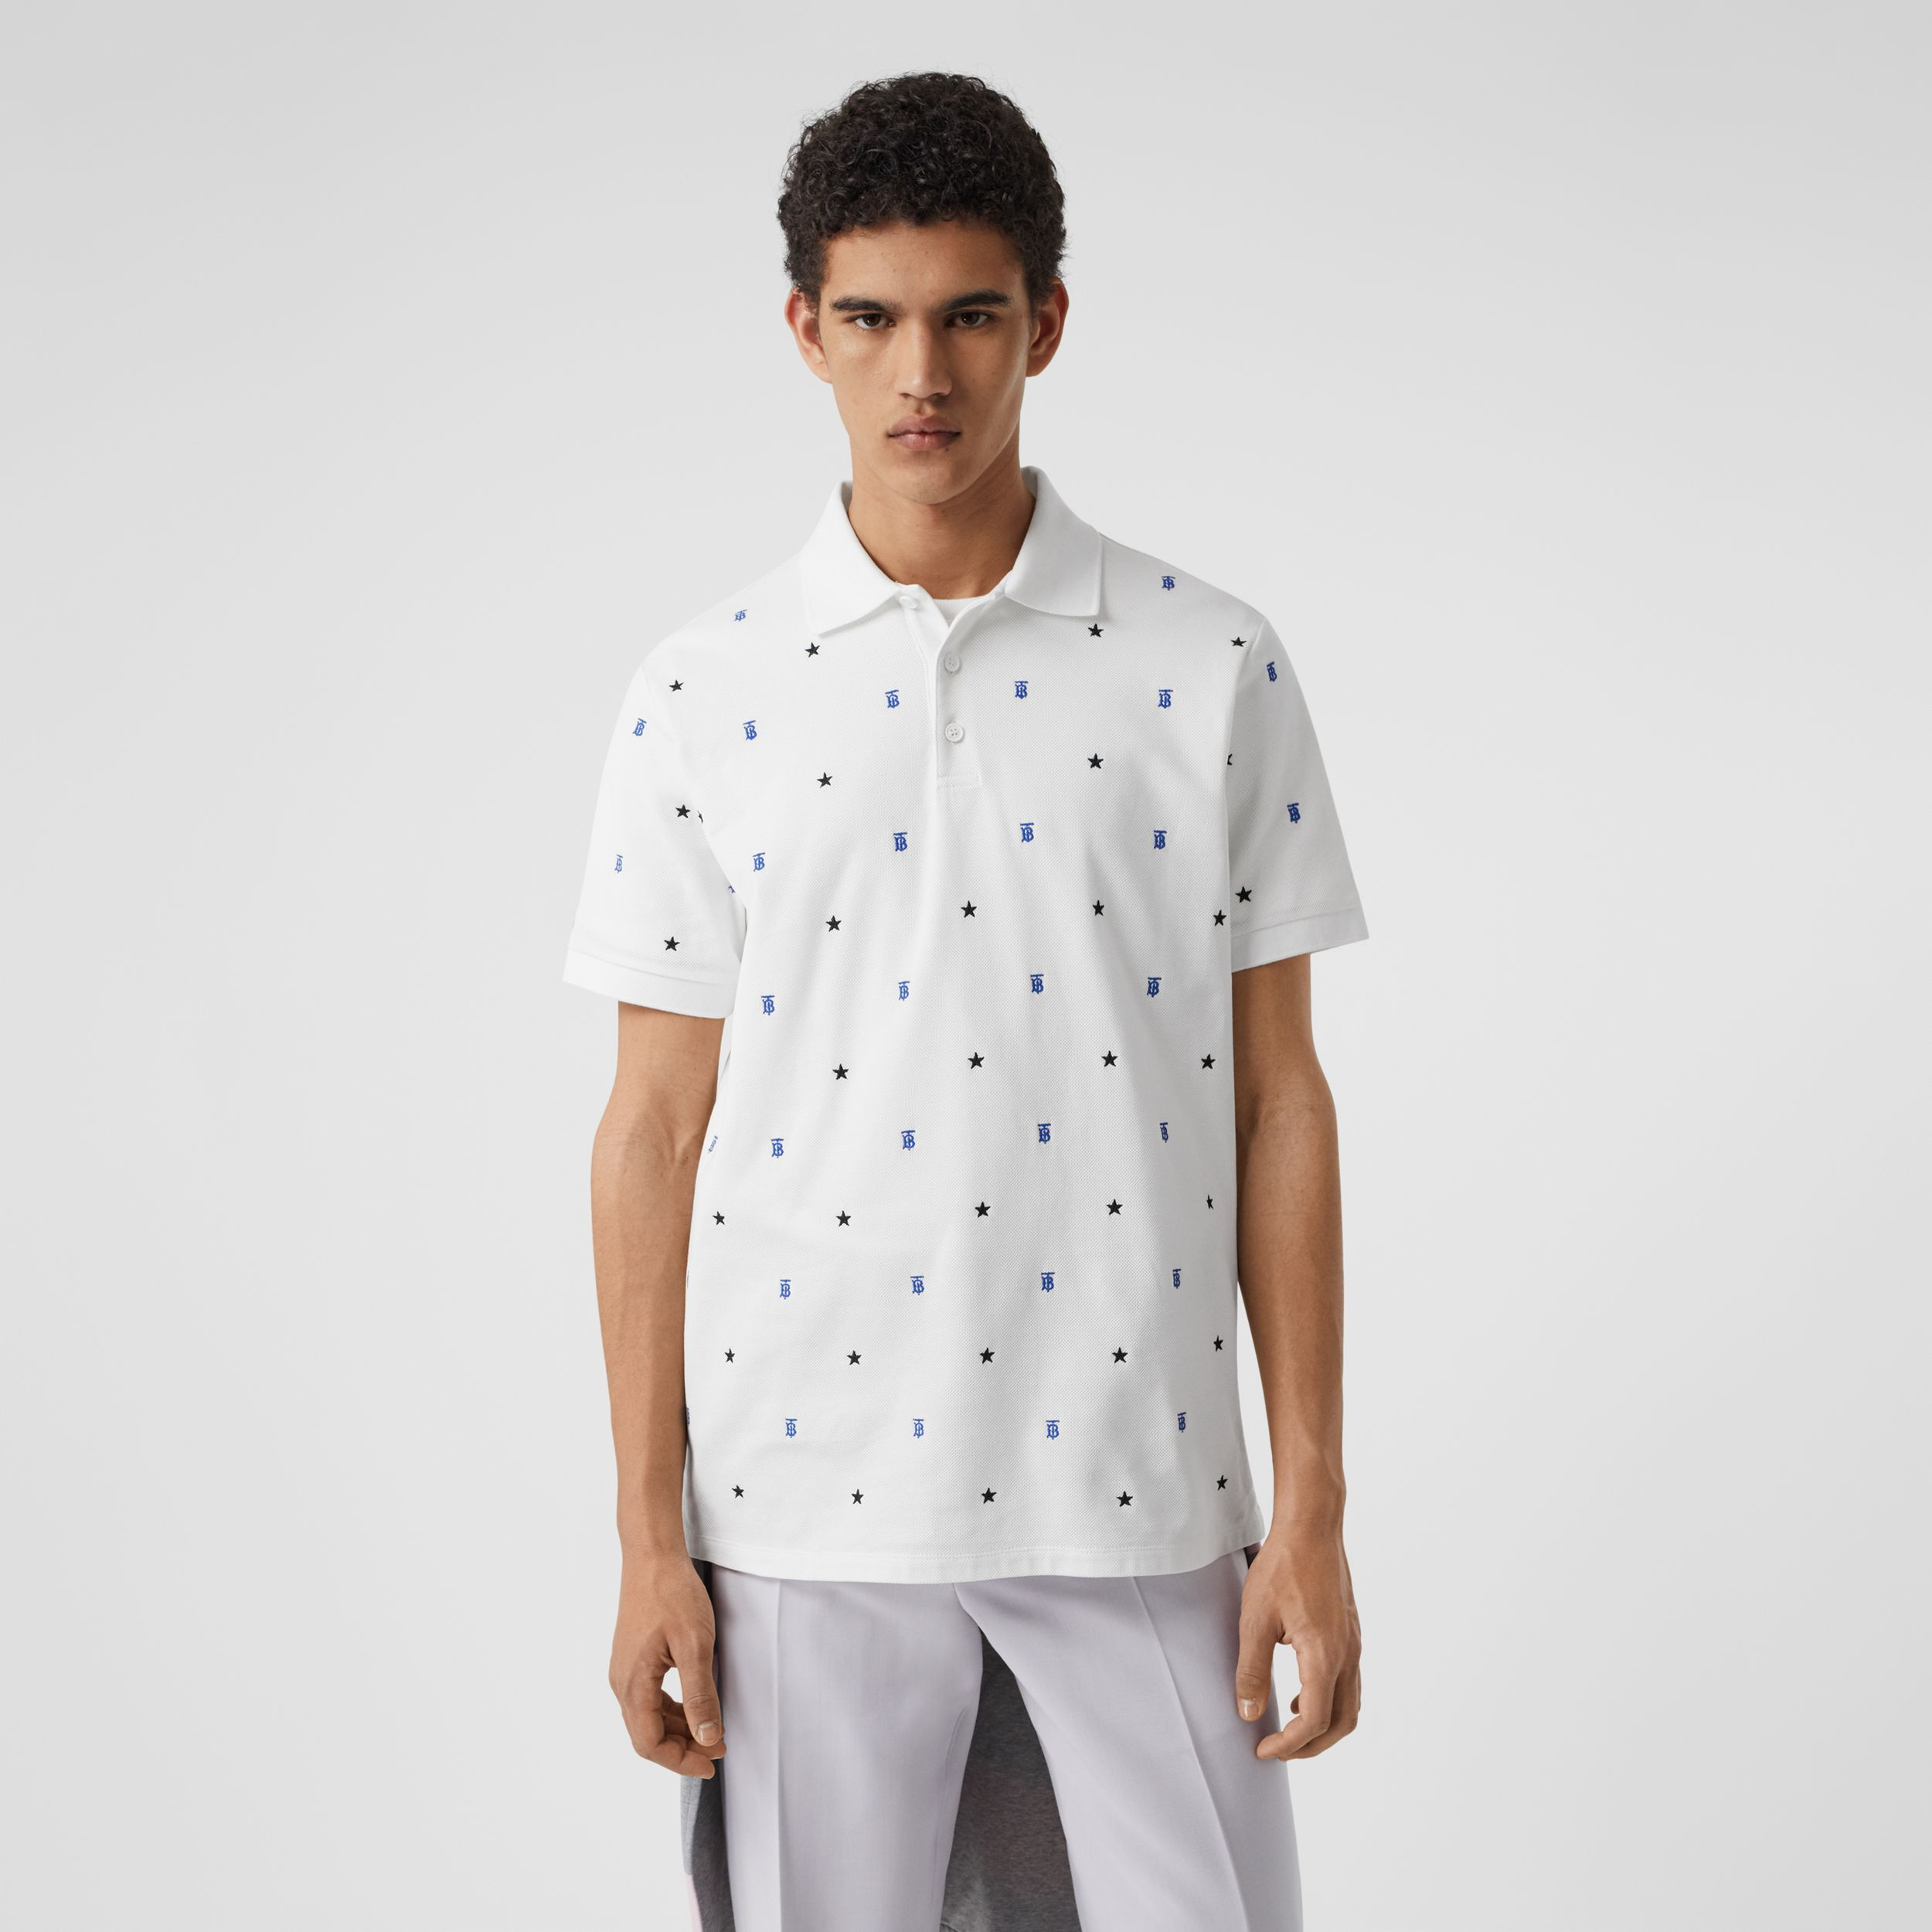 Star and Monogram Motif Cotton Piqué Polo Shirt in White - Men | Burberry - 1